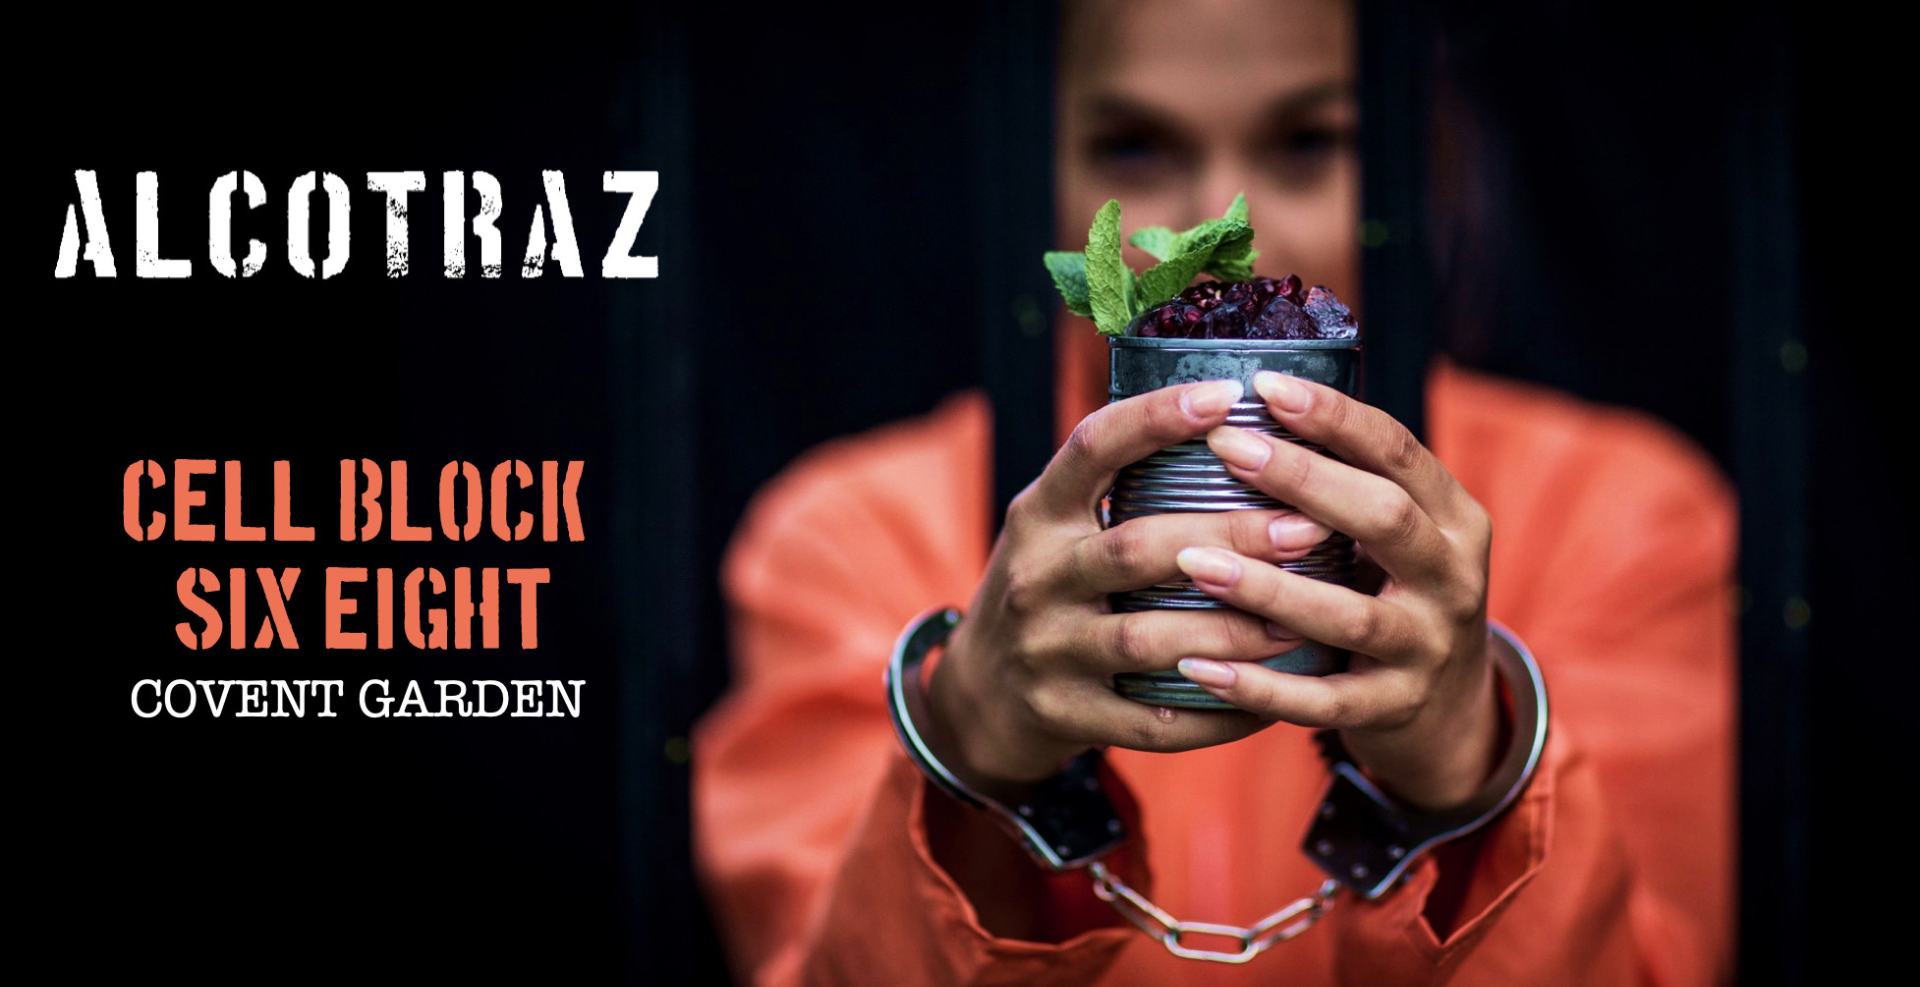 Alcotraz: Cell Block Six Eight